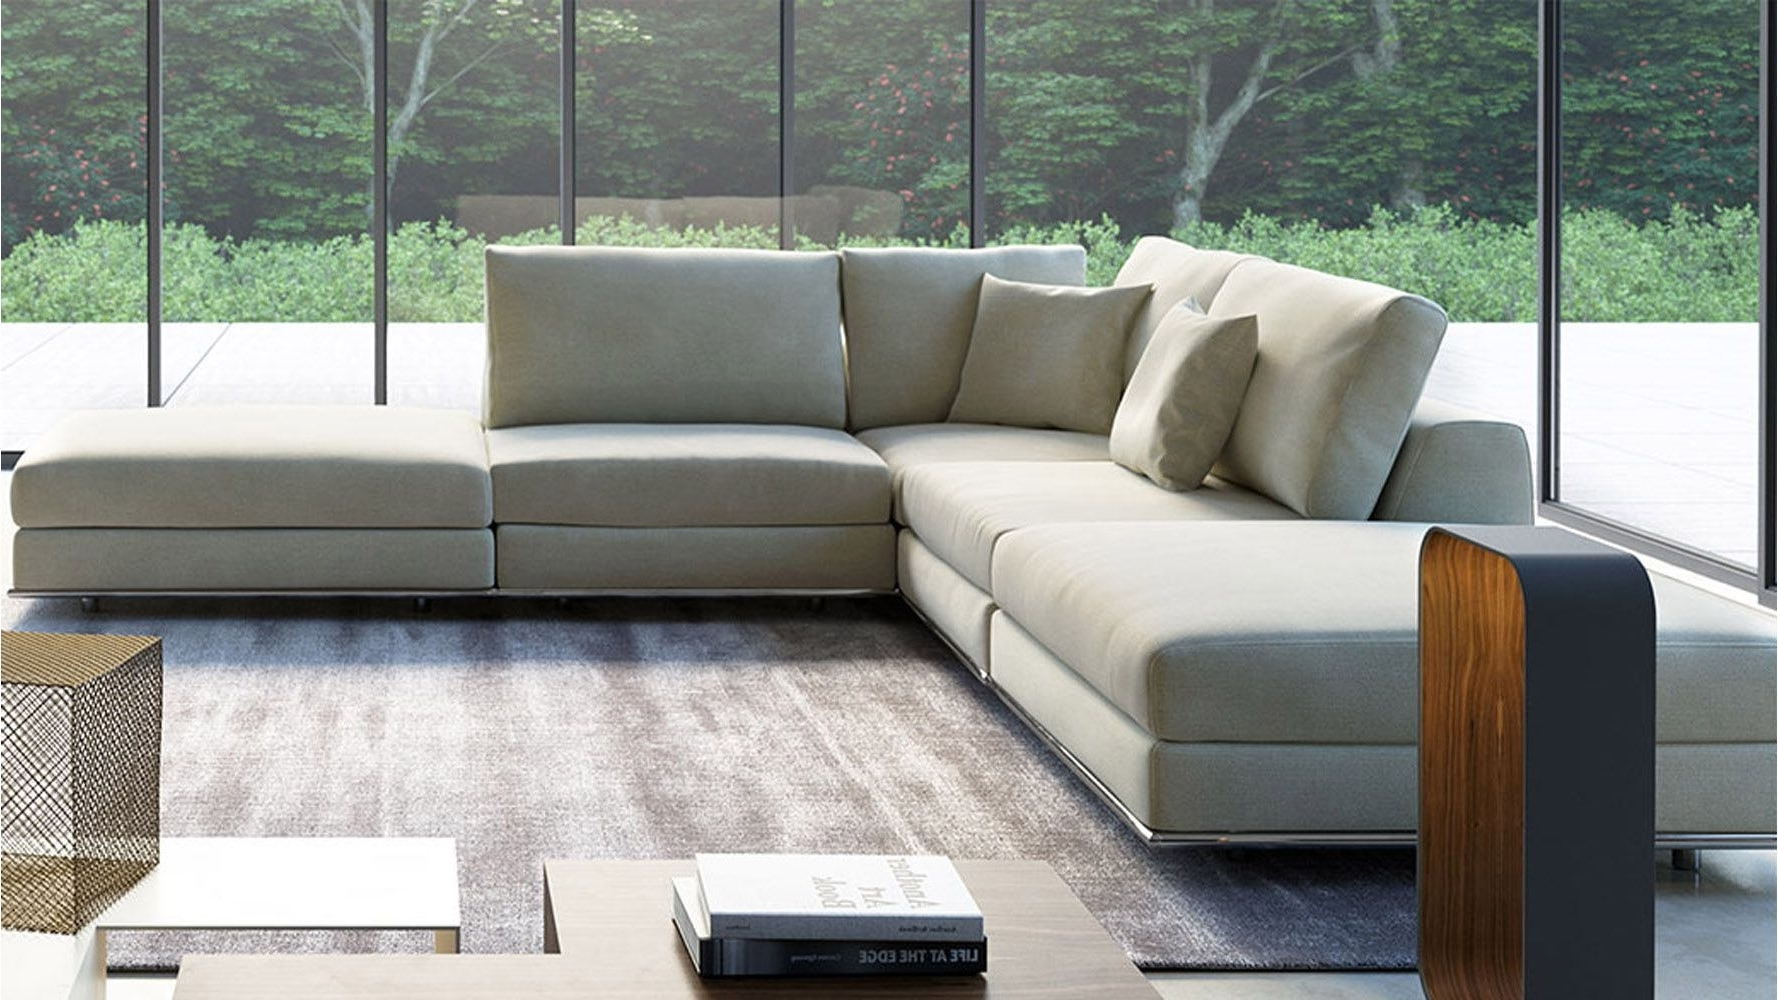 Trendy Armless Sectional Sofas With Cool Armless Sectional Sofa , Unique Armless Sectional Sofa 22 On (View 2 of 15)